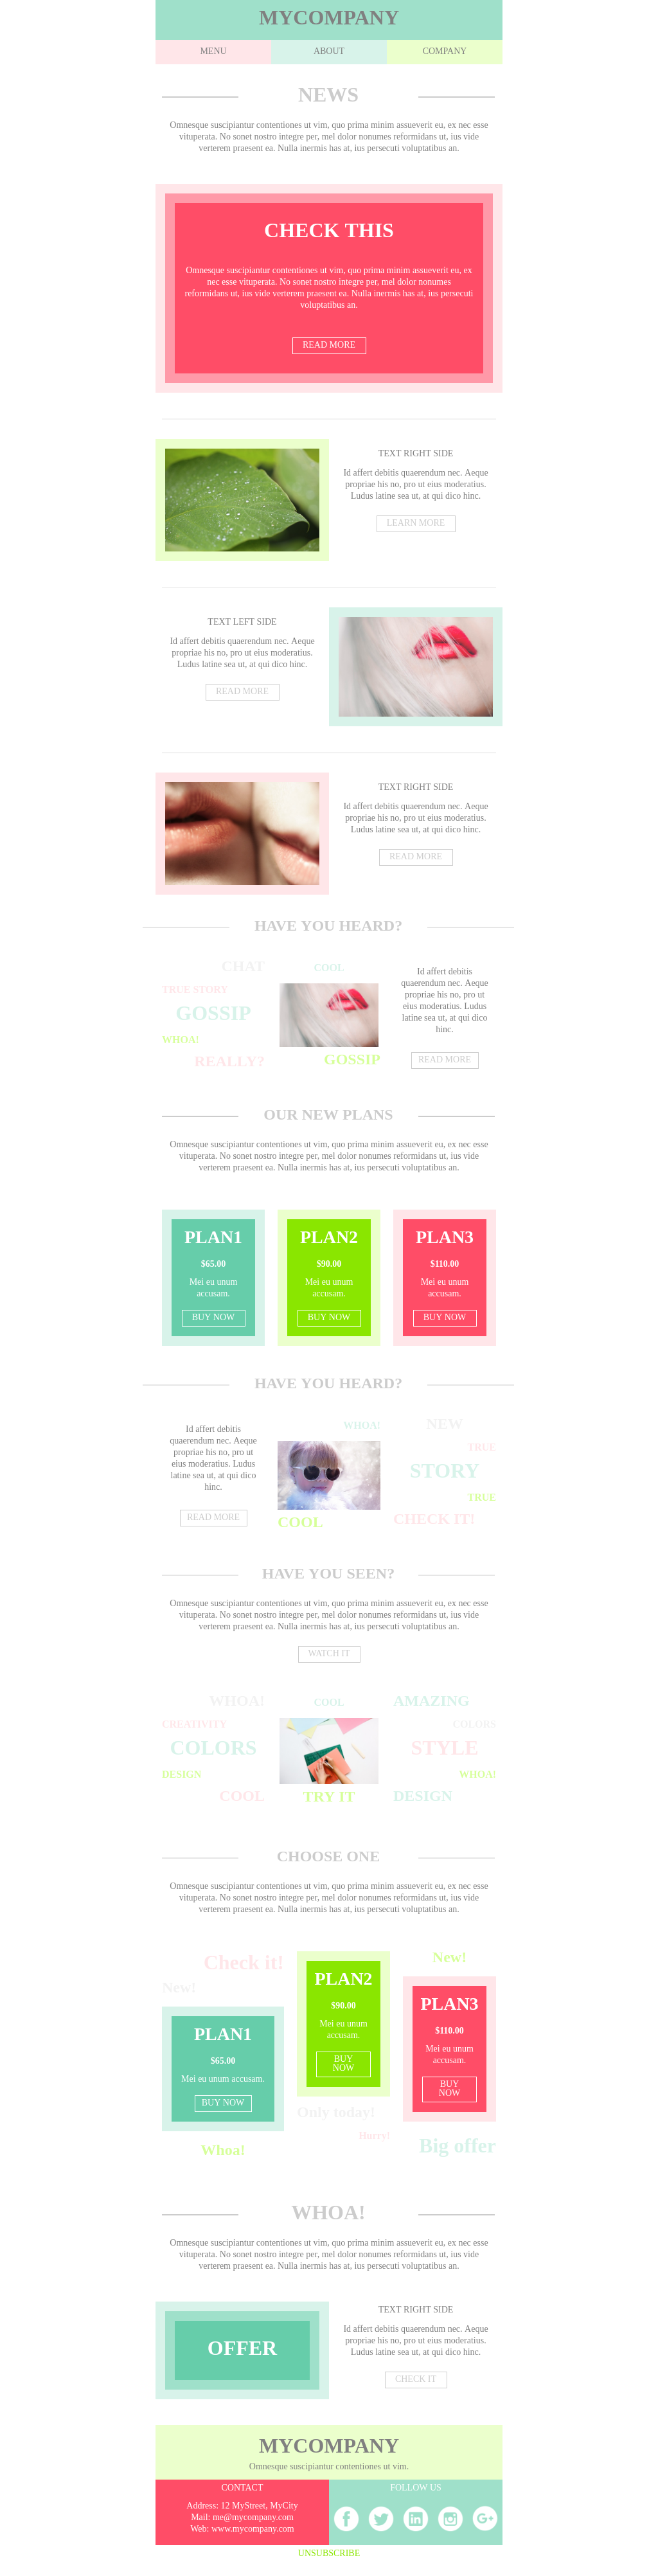 Playful mobile-friendly newsletter template in vivid colors